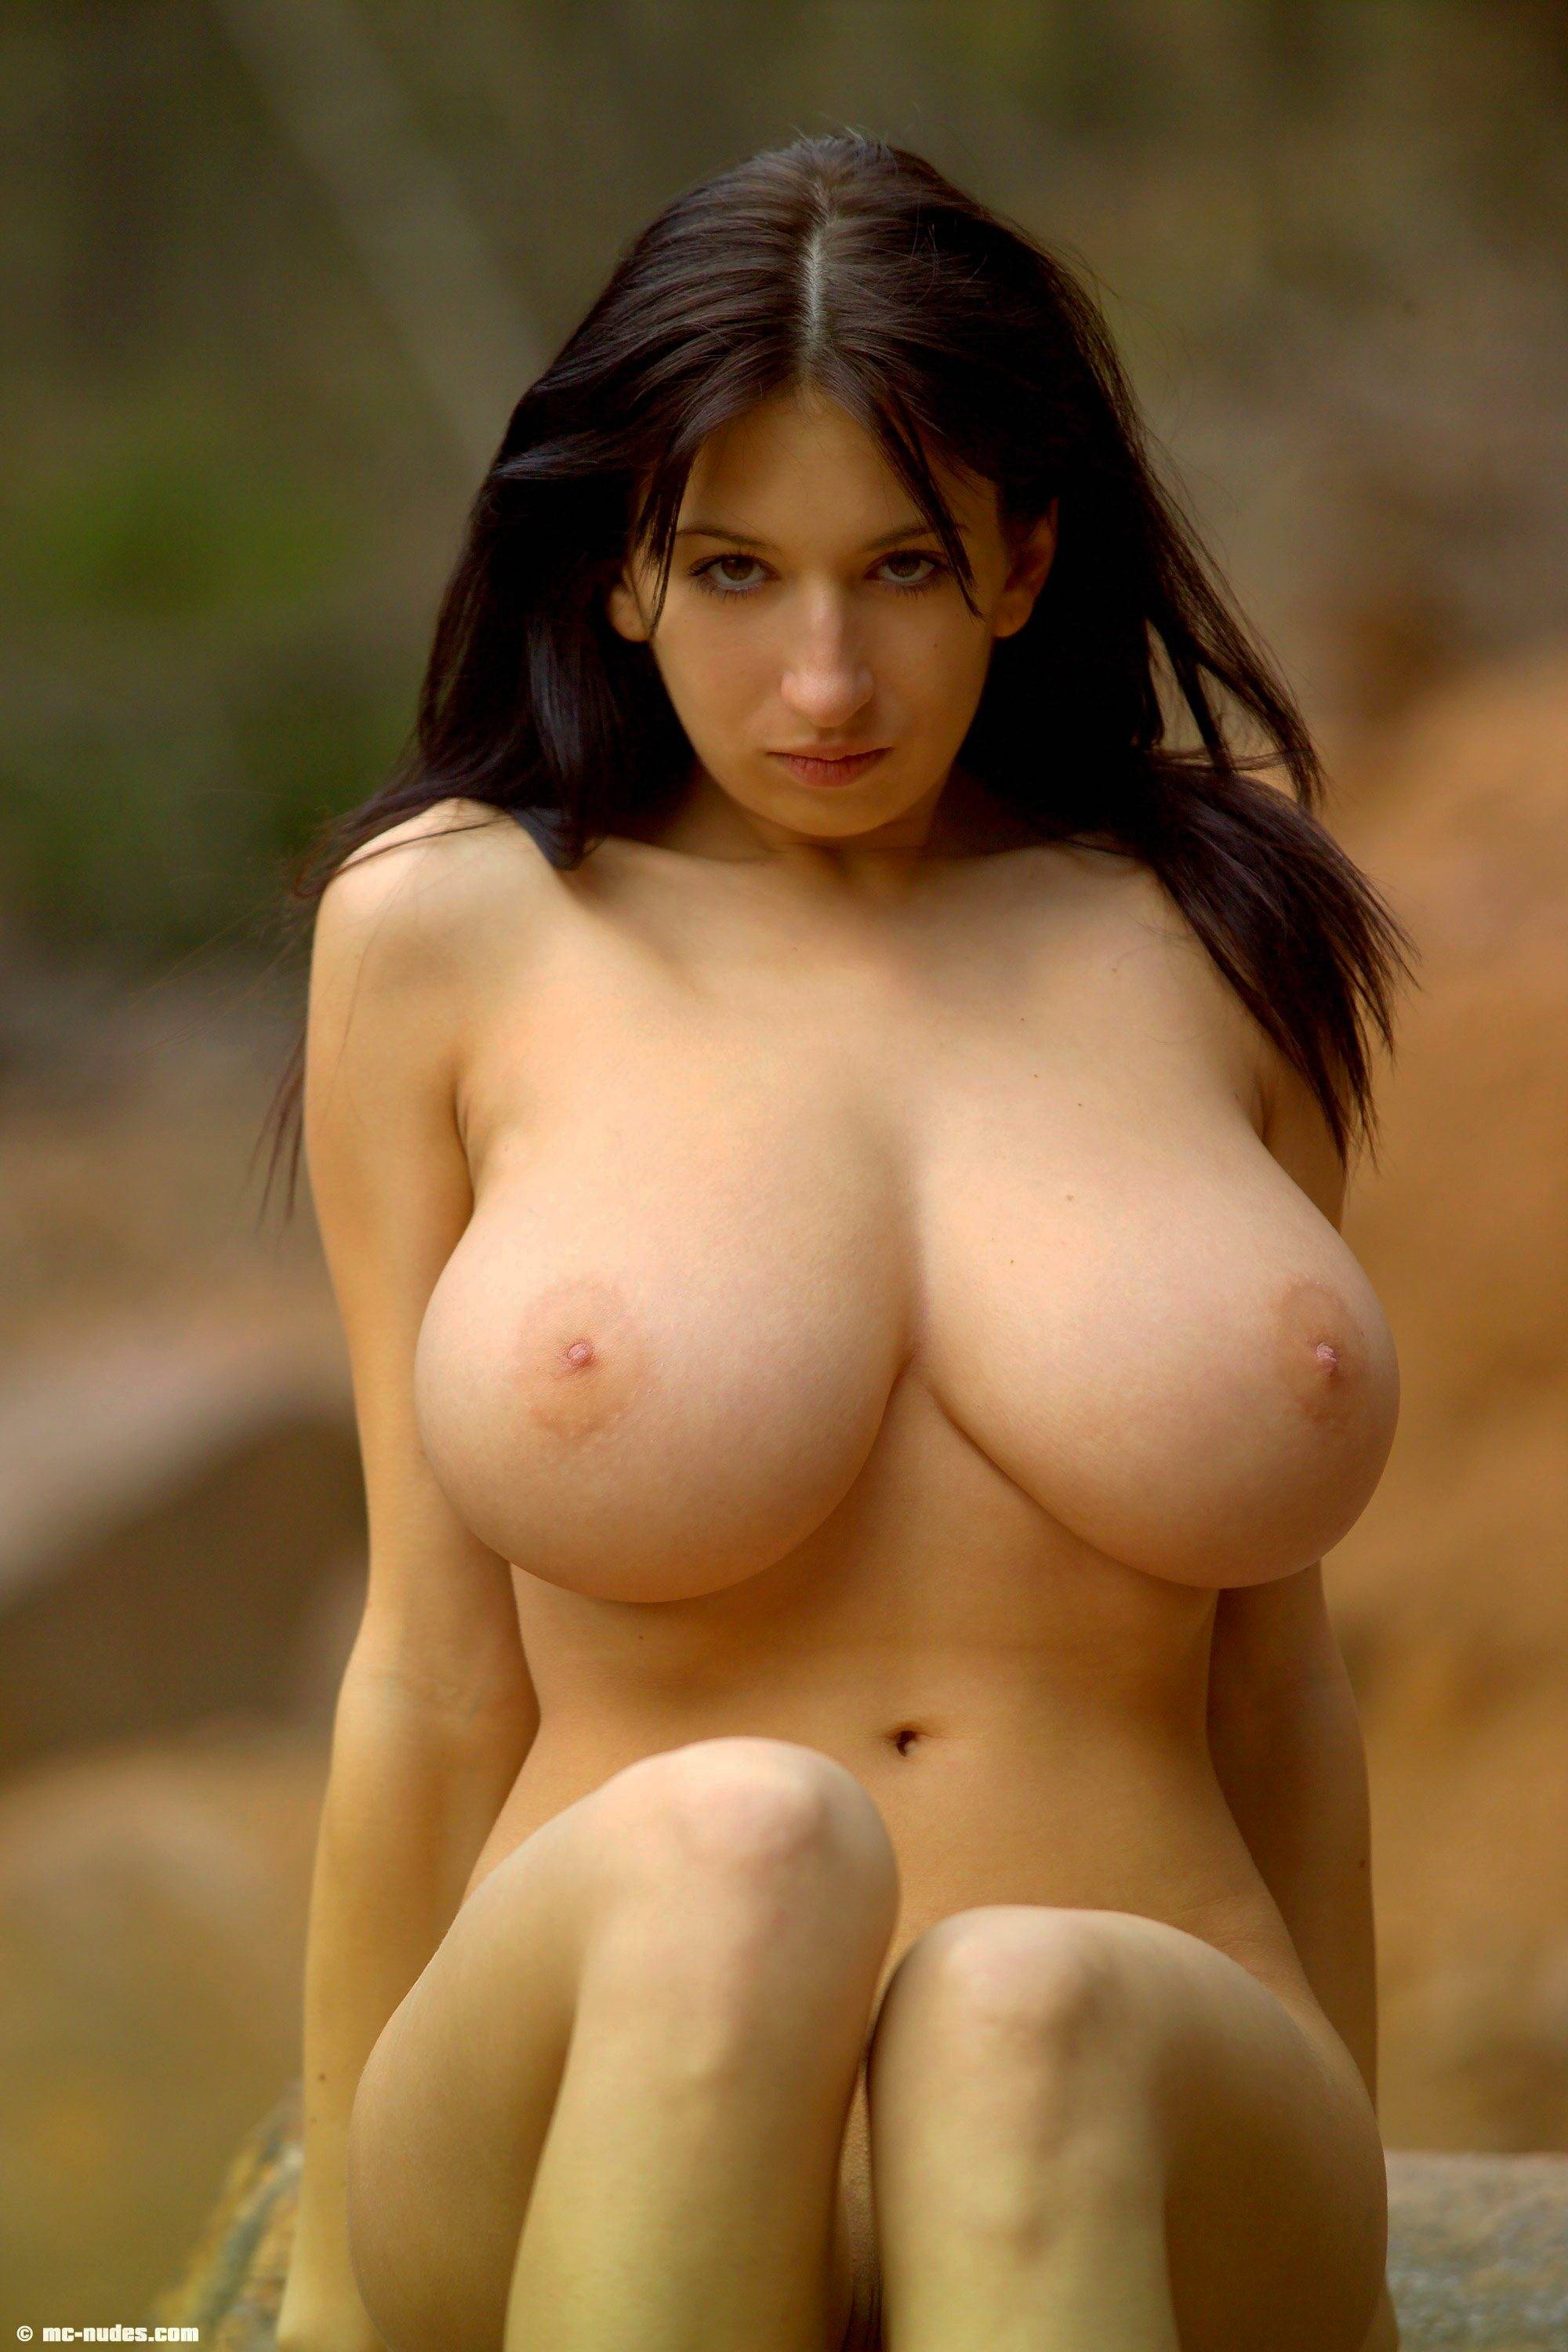 busty babes Curvy outdoors nude